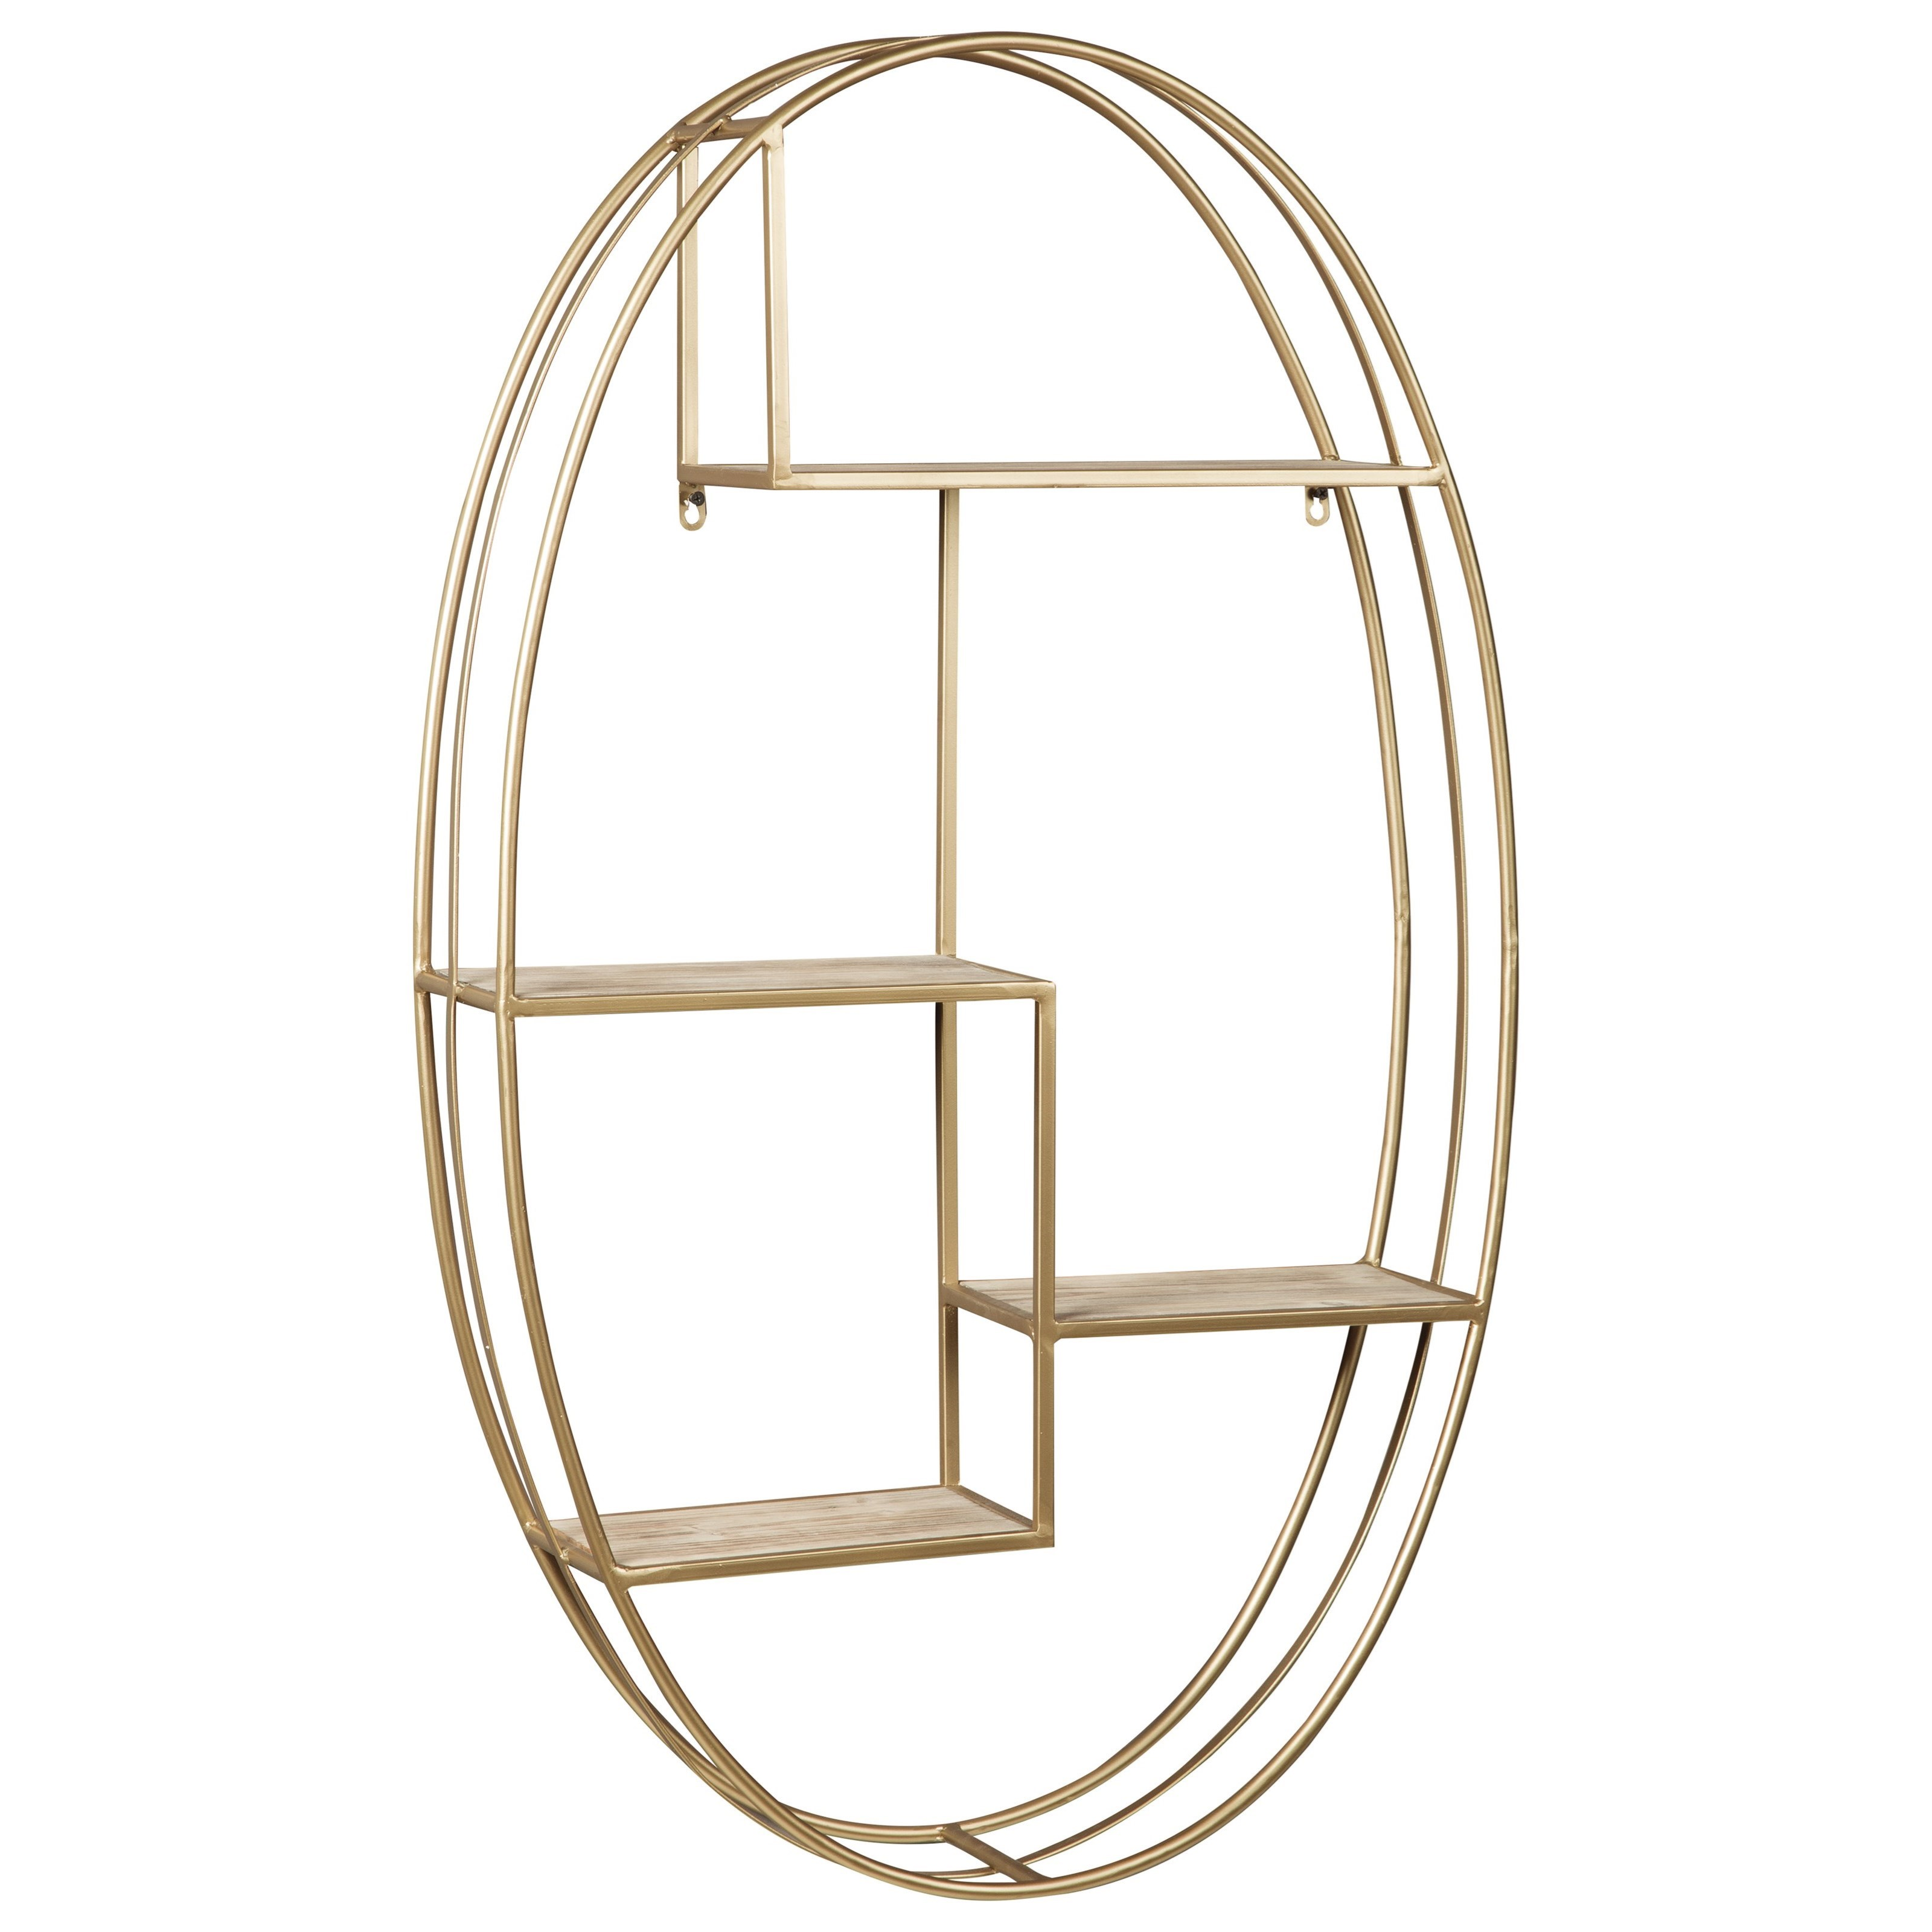 Signature Design by Ashley Wall Art Elettra Natural/Gold Finish Wall Shelf - Item Number: A8010106